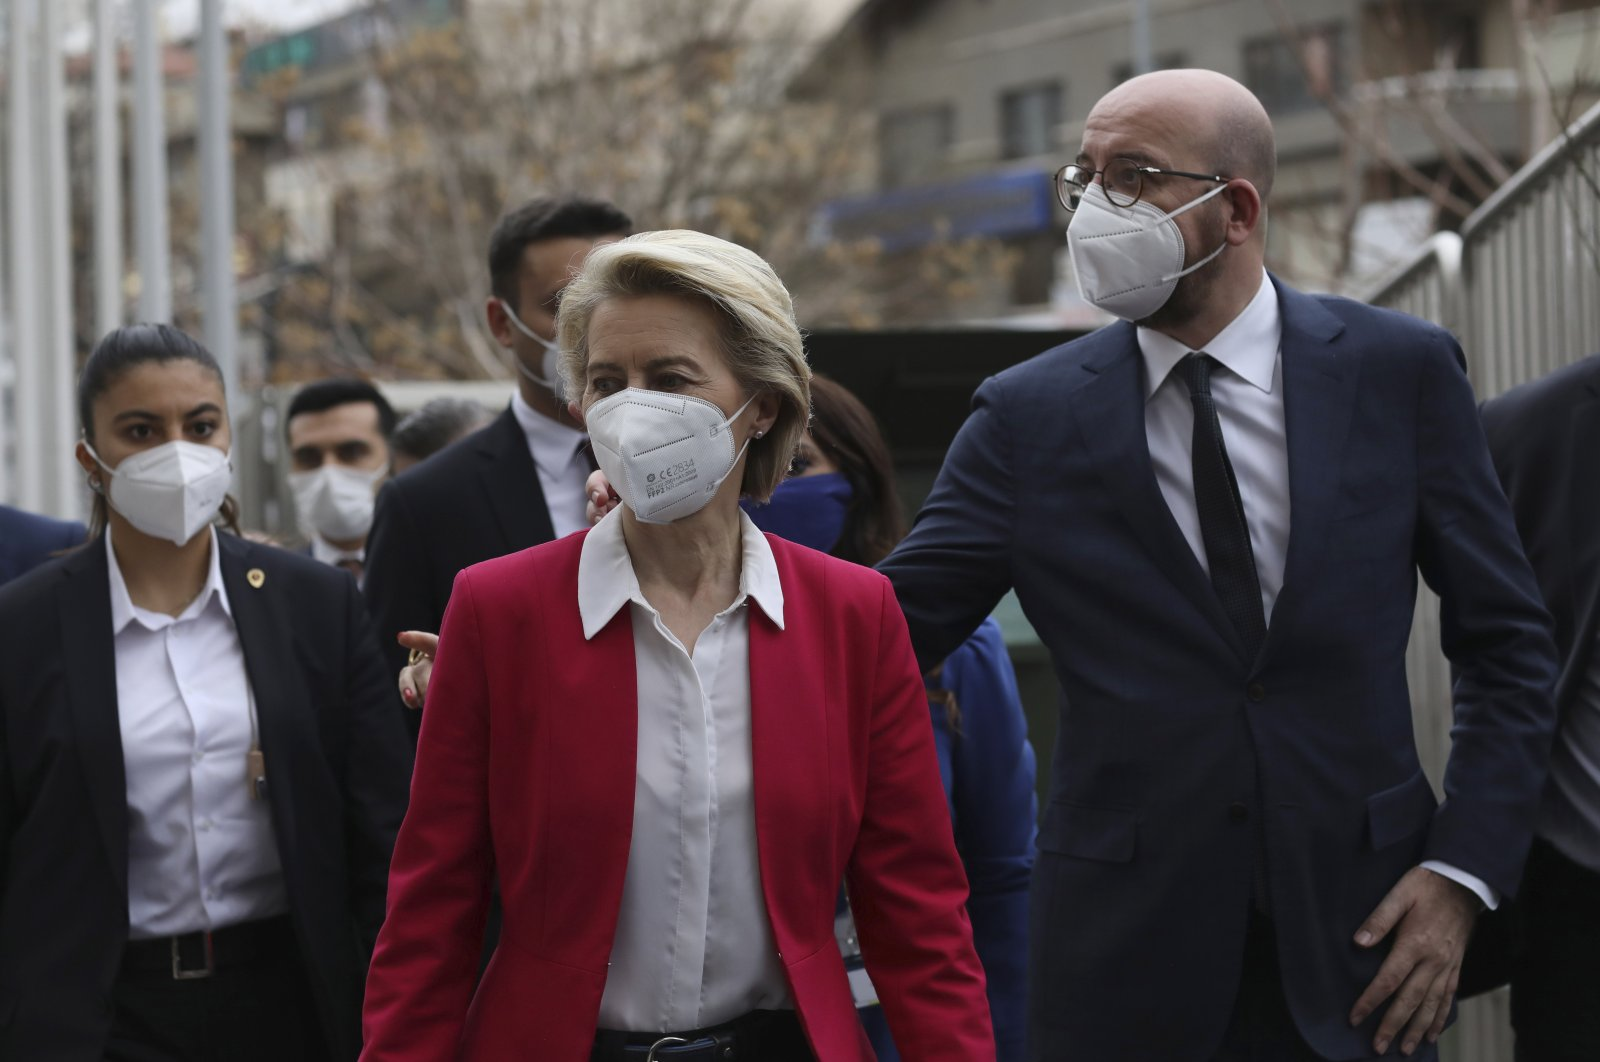 European Commission President Ursula von der Leyen (C) and European Council President Charles Michel arrive for a joint news conference after talks with President Recep Tayyip Erdoğan, in Ankara, Turkey, April 6, 2021. (AP Photo)